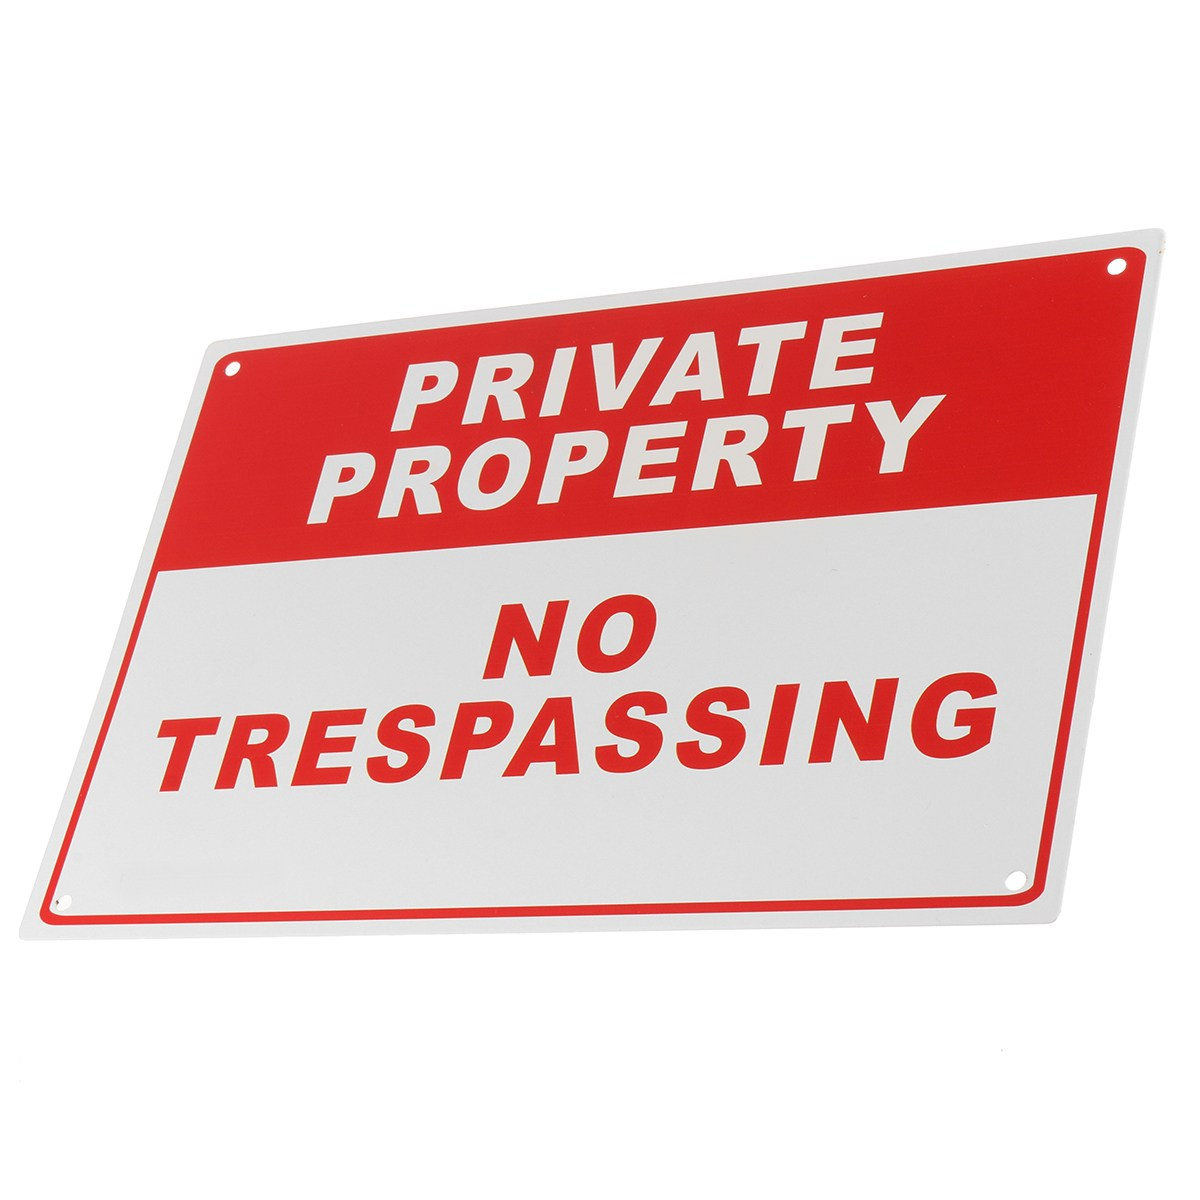 NEW Private Property No Trespassing Metal Safety Warning Sign 4 Drilled Hole 20x30cm Home Security fire dept no problem metal tin sign 16 x 12 5